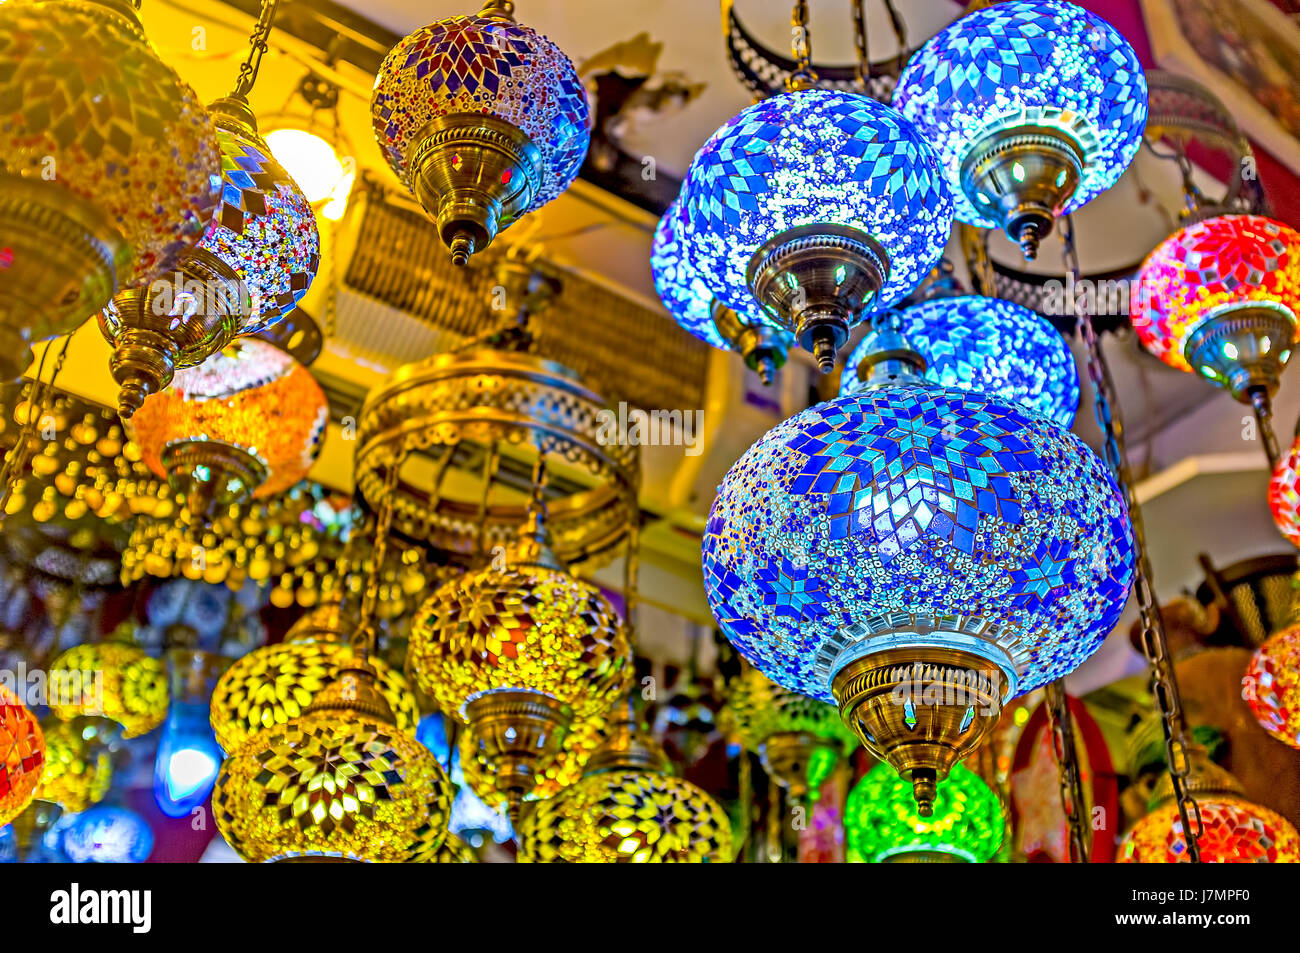 Kemer turkey may 5 2017 the lighting stores of traditional arabian lights offer lamps and chandeliers for each taste and price on may 5 in kemer